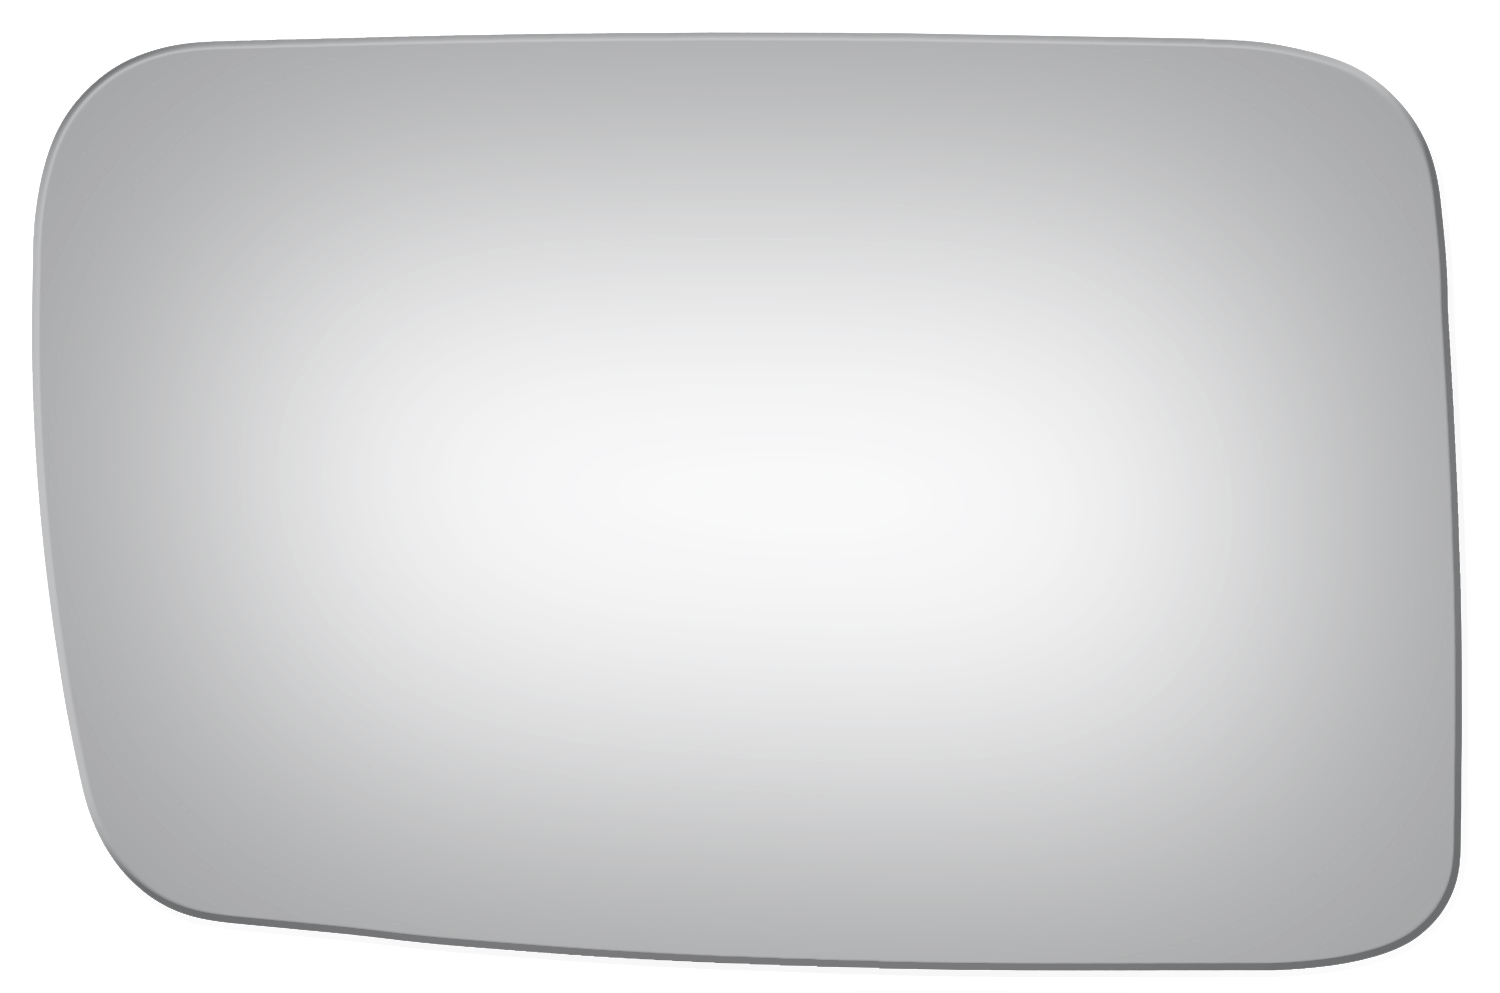 Replacement Car Side Mirrors - JEEP - Page 1